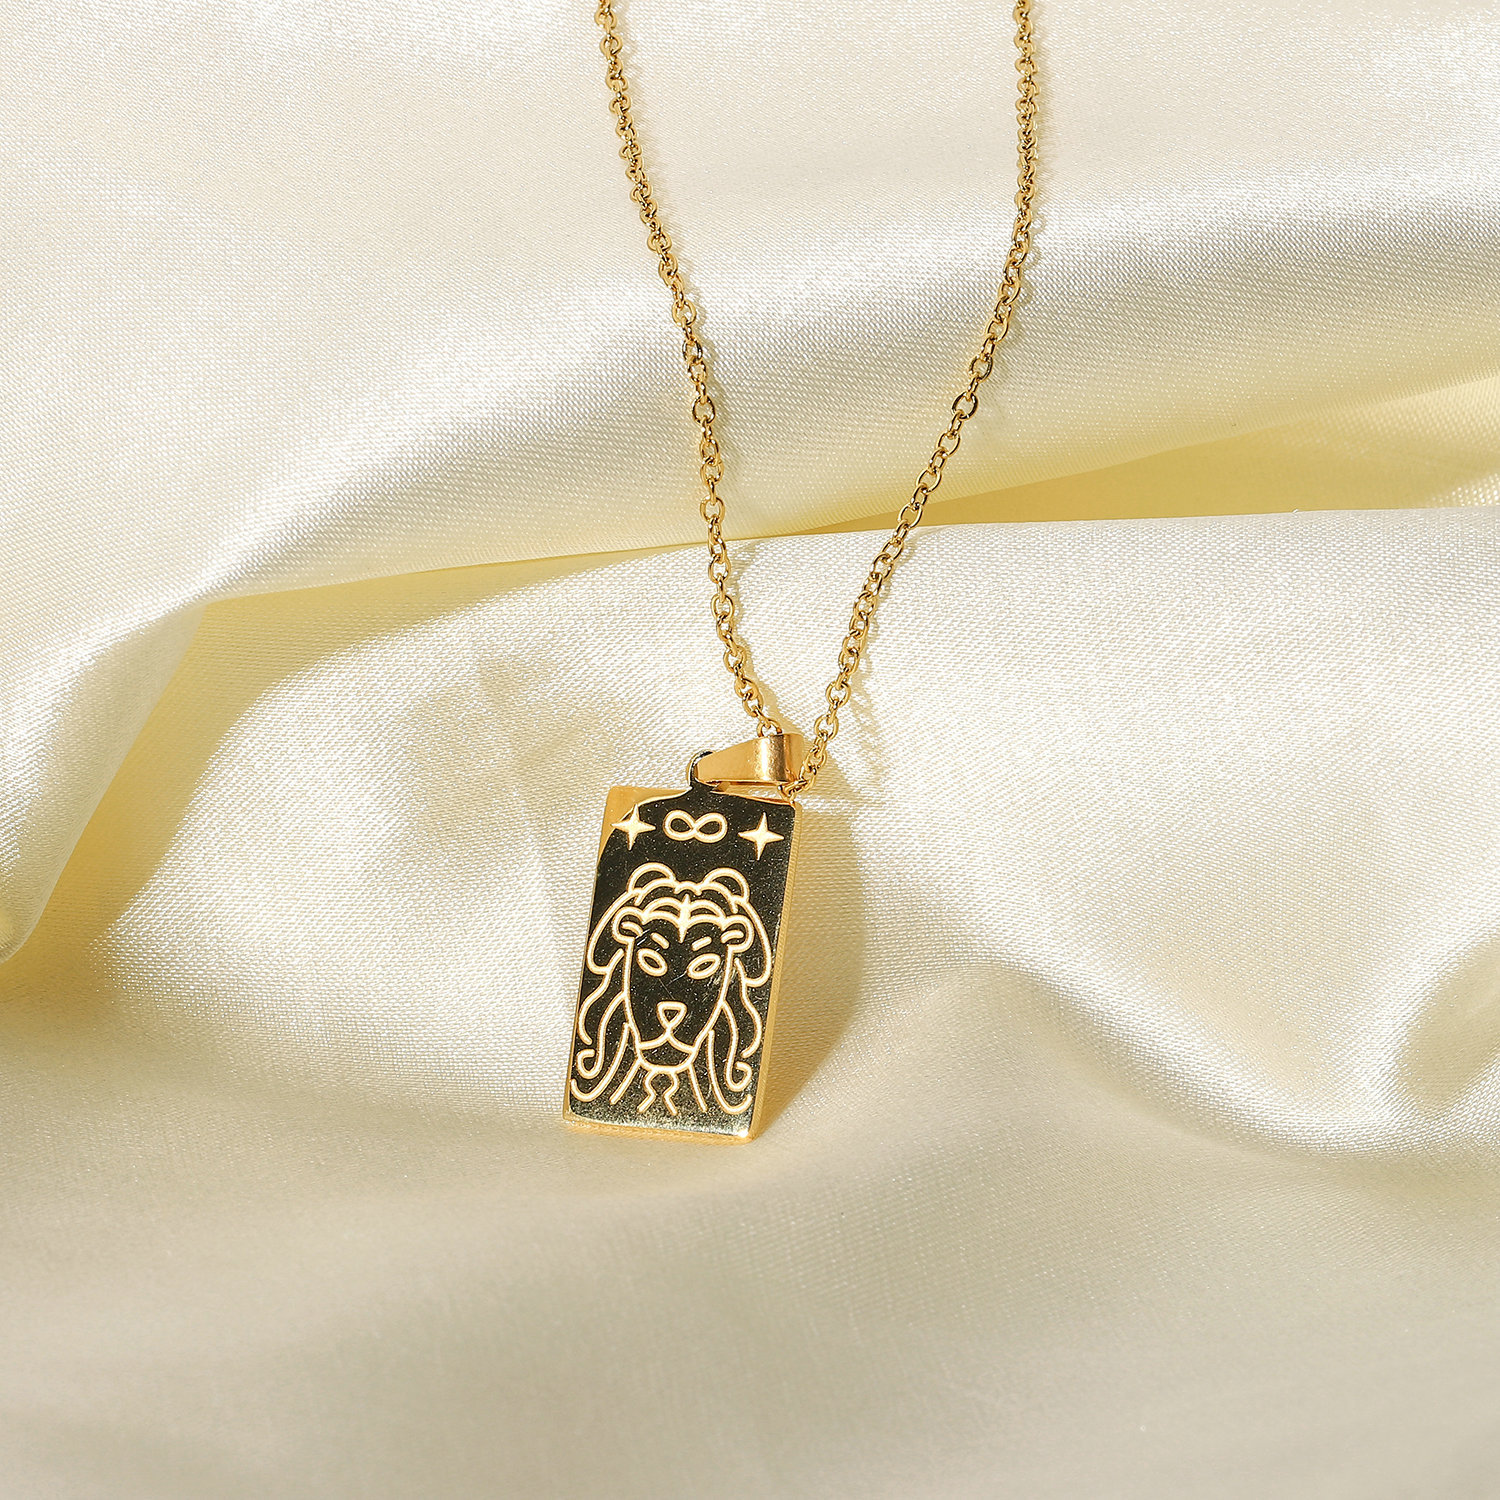 Fashion Stainless Steel Gold Embossed Star Eye Pendant Necklace NHJIE369981